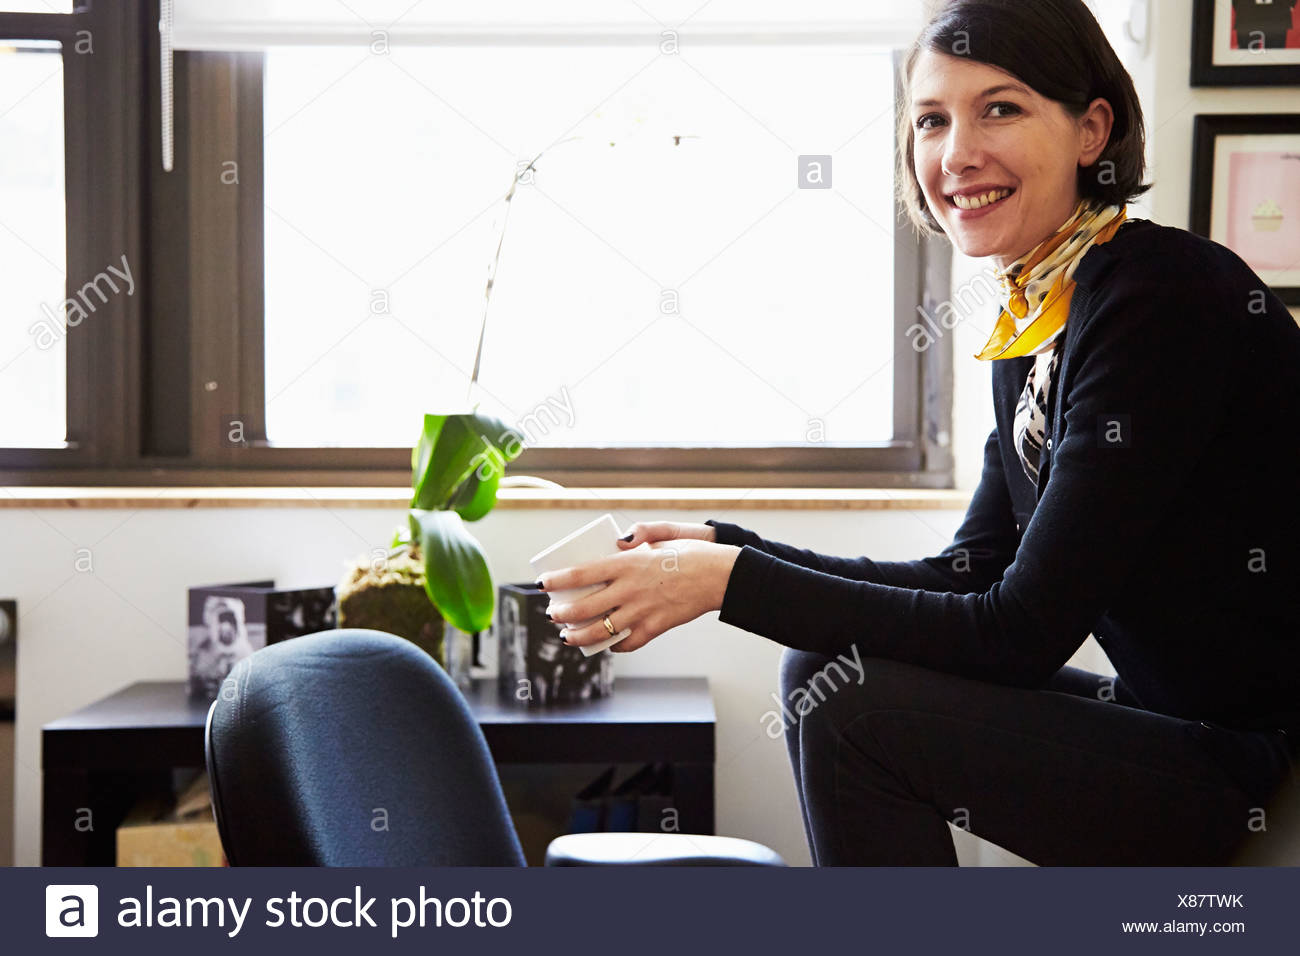 Businesswoman sitting in office Photo Stock